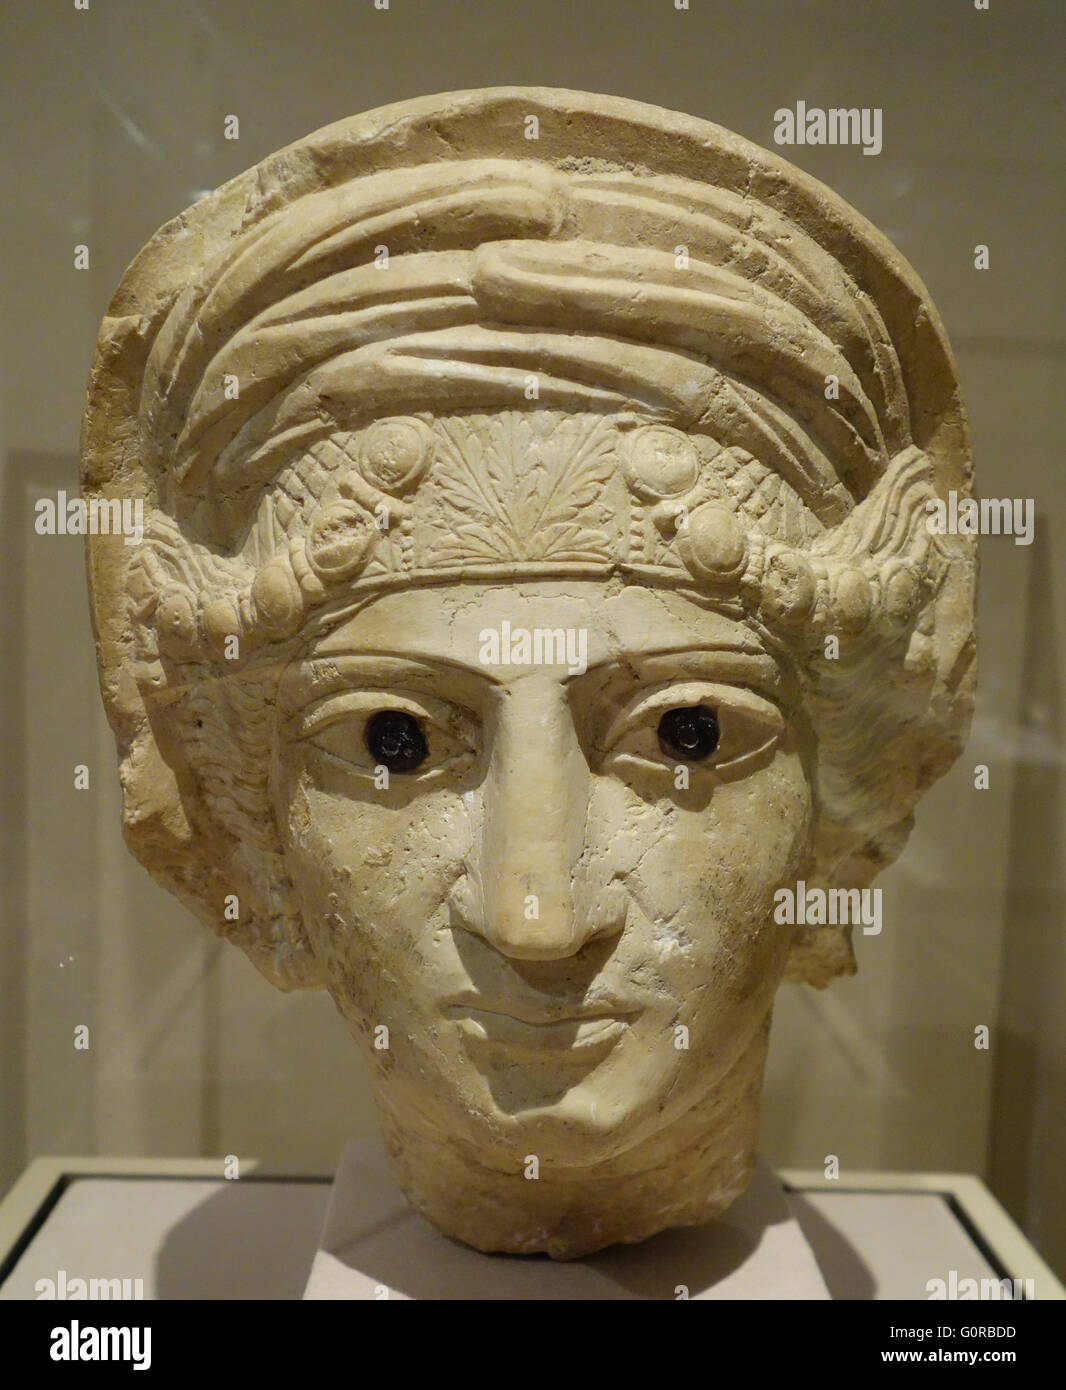 3C funerary head from Palmyra, Syria displayed in LACMA, Los Angeles, California Stock Photo